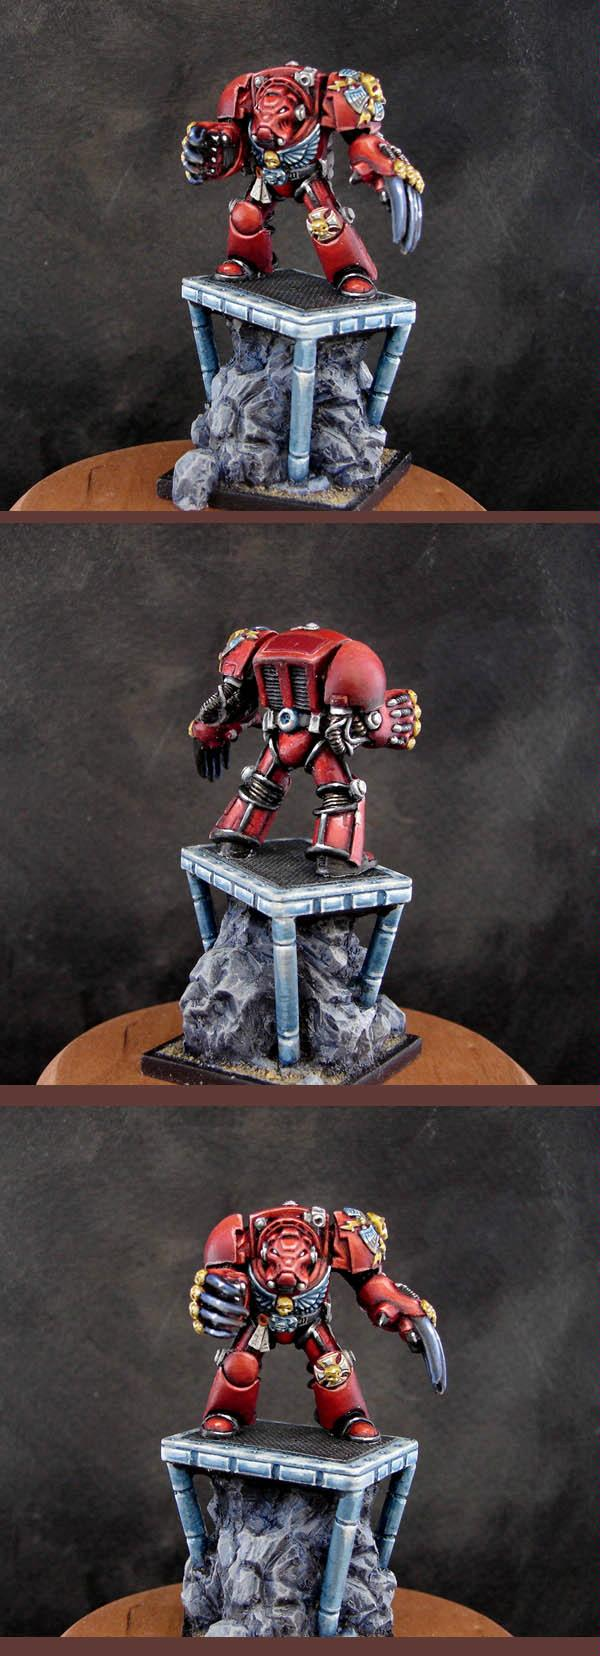 Armorcast, Blood Angels, Space Marines, Terminator Armor, Warhammer 40,000